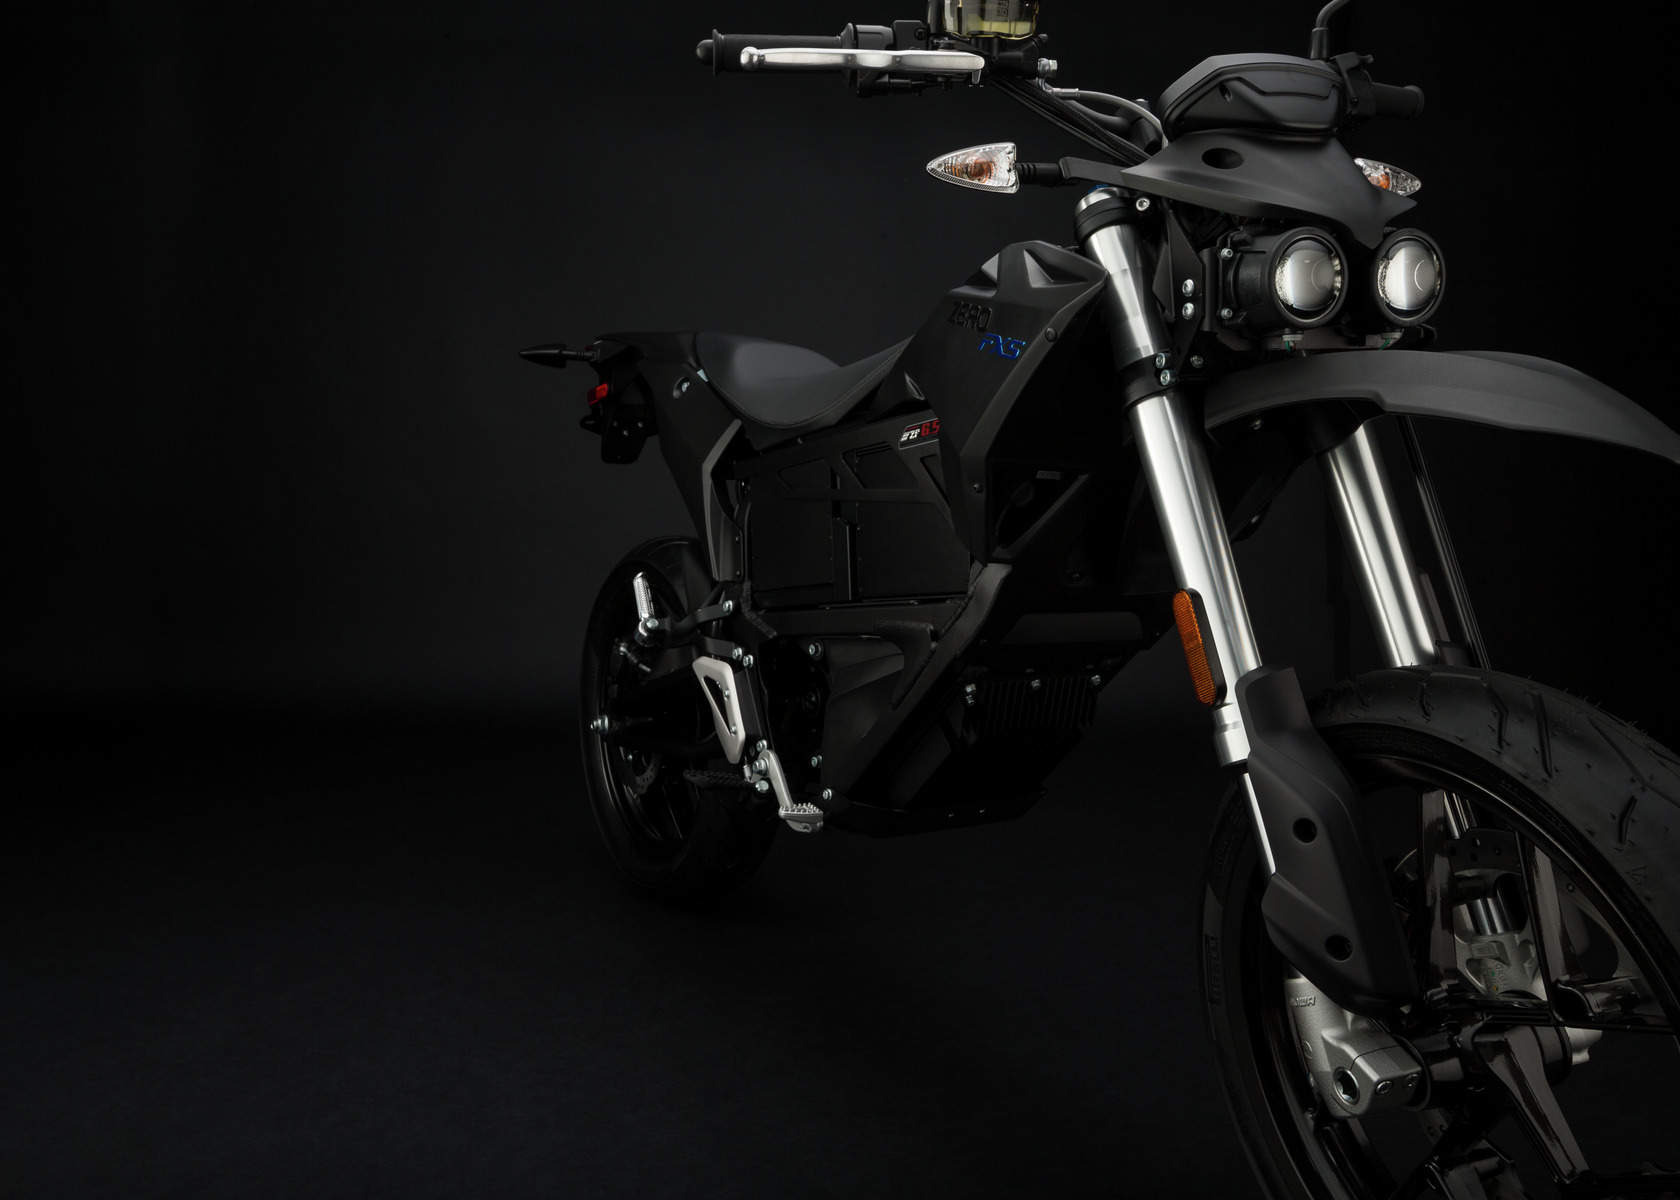 2016 Zero FXS Electric Motorcycle: Front Fork